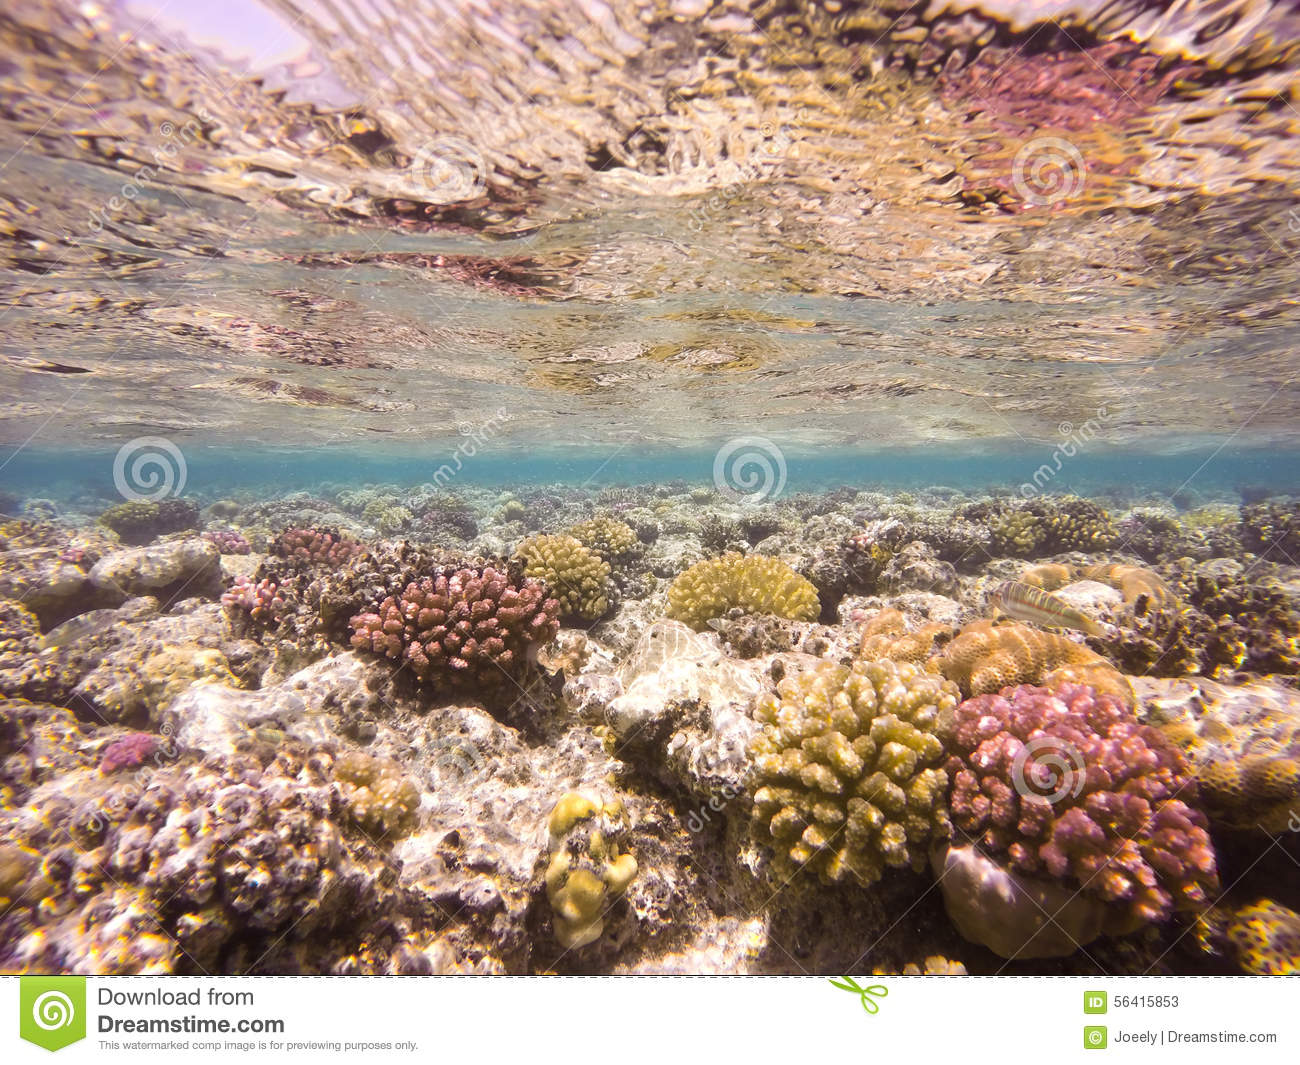 Vibrant Caribbean: Colourful Underwater Coral Reef Stock Photo